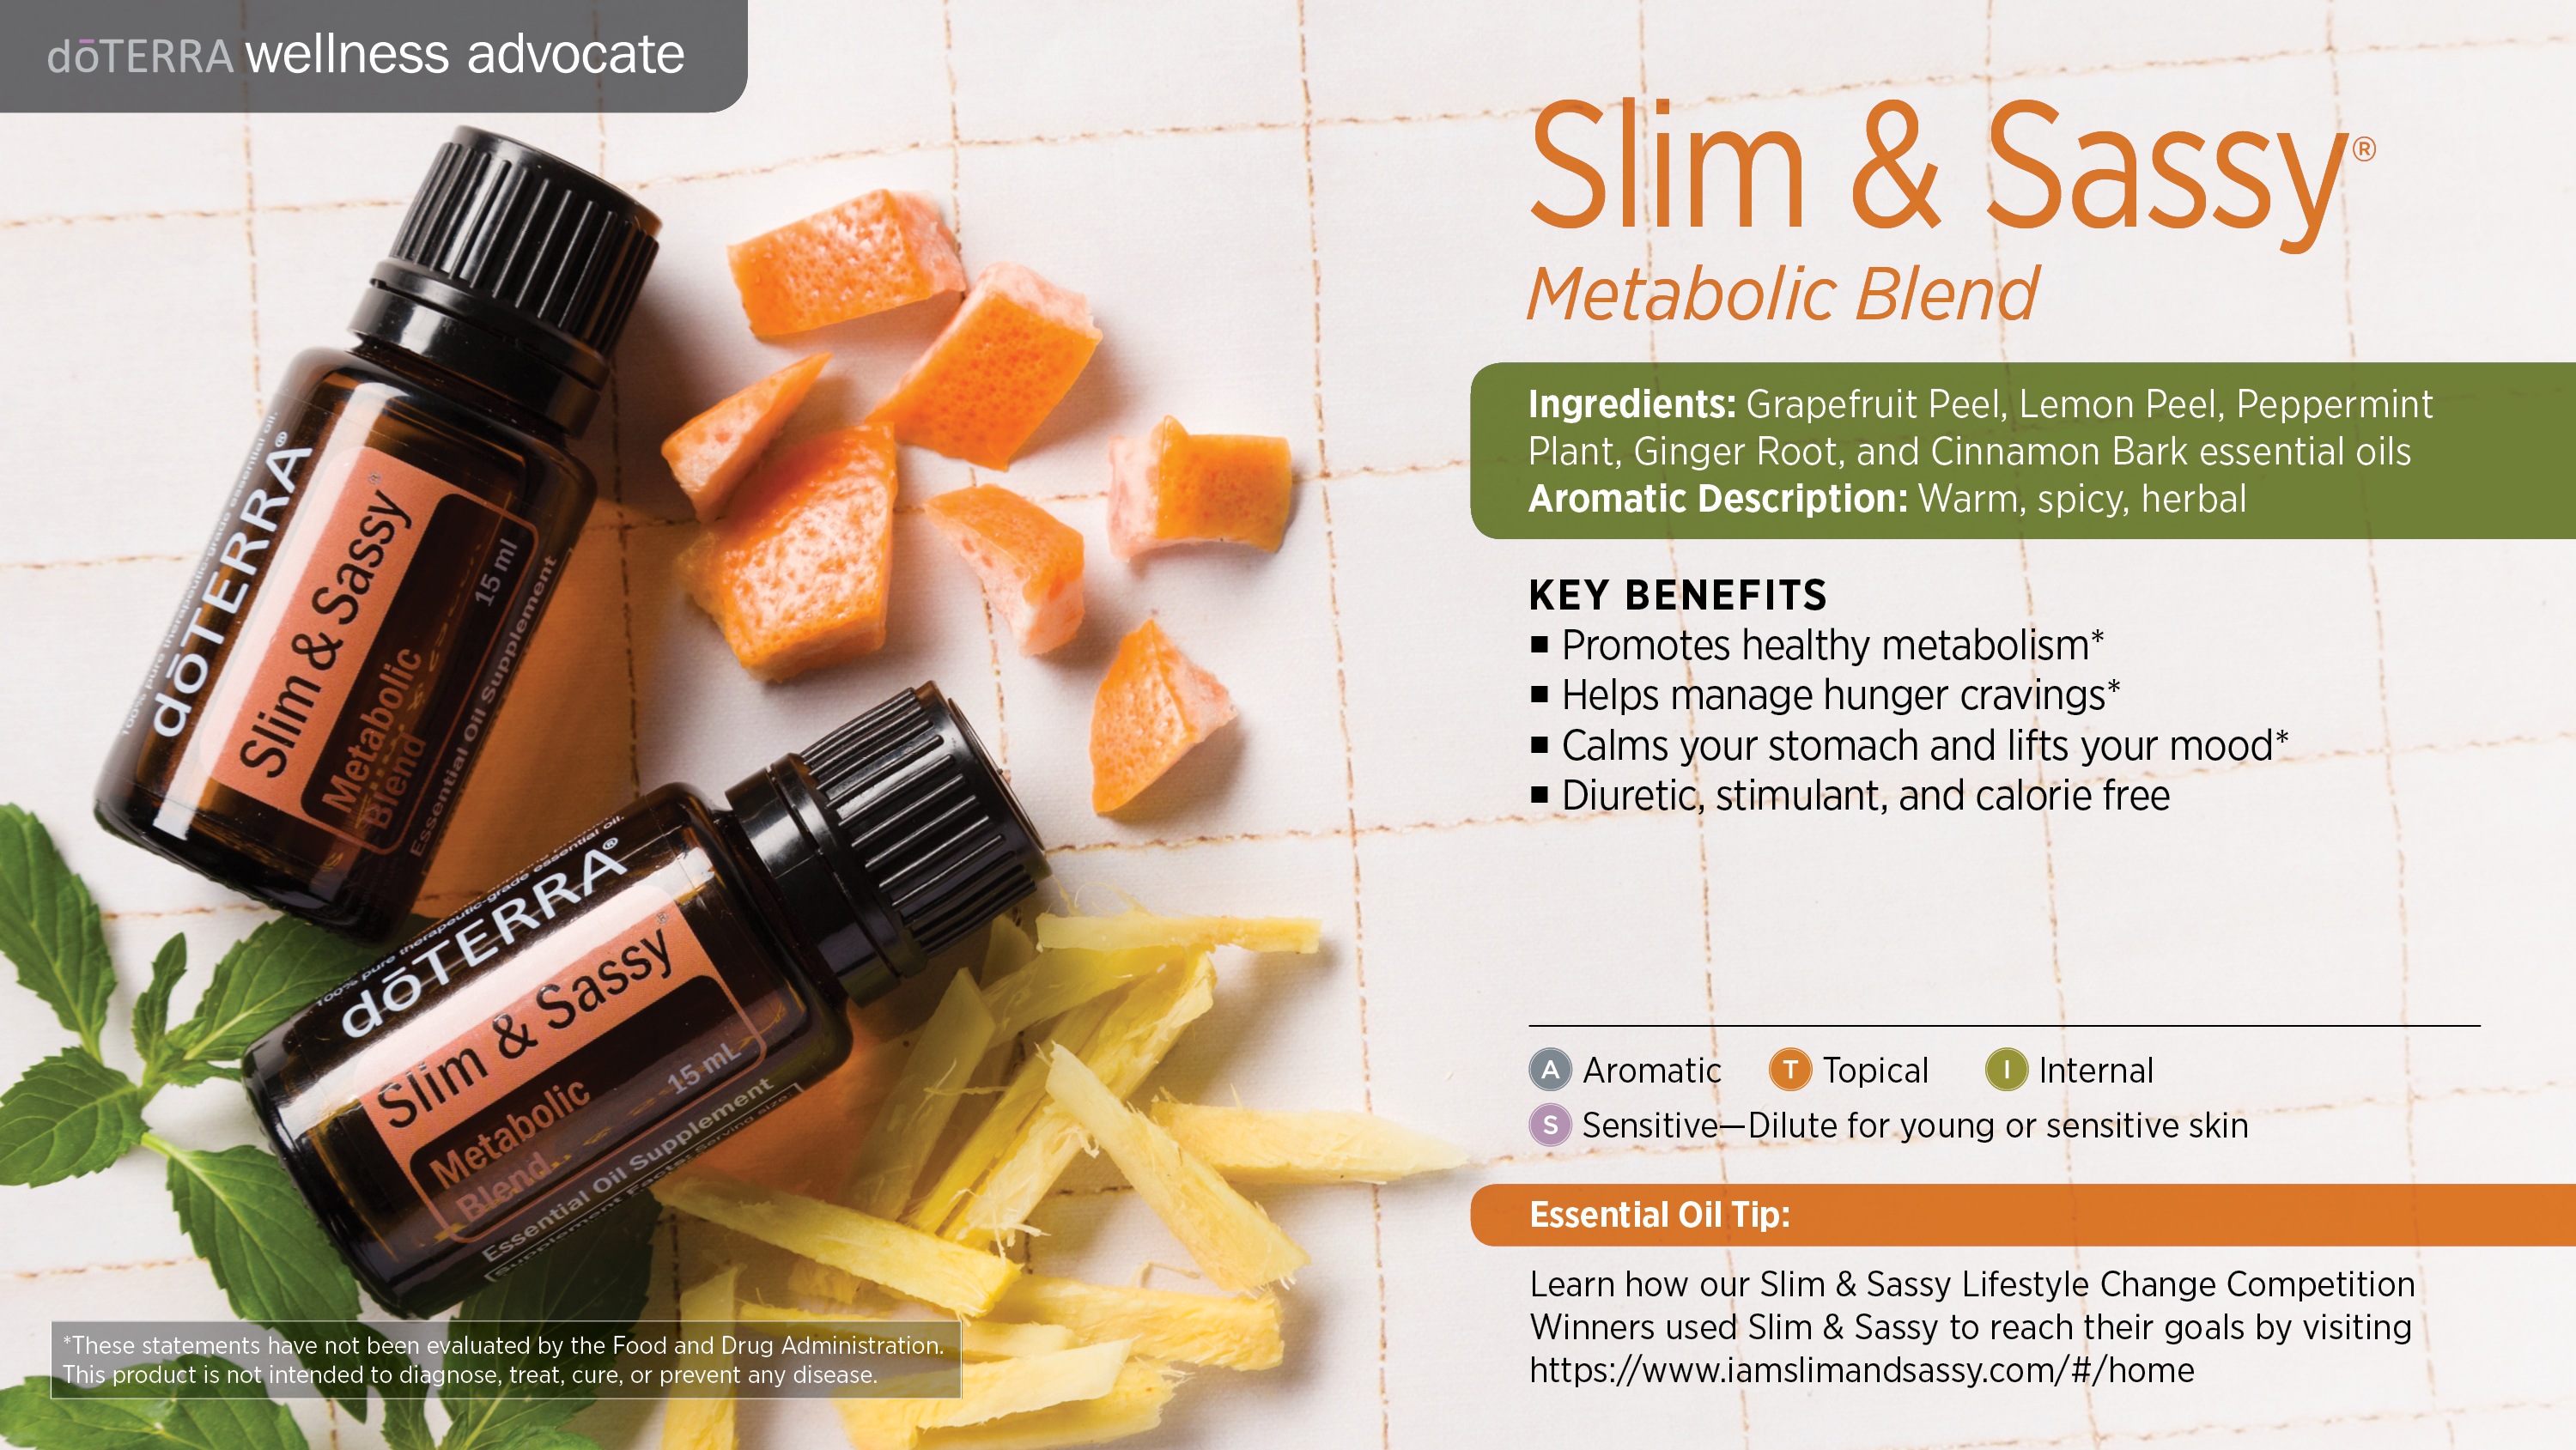 doTERRA Slim and Sassy Metabolic Blend and How to Use It